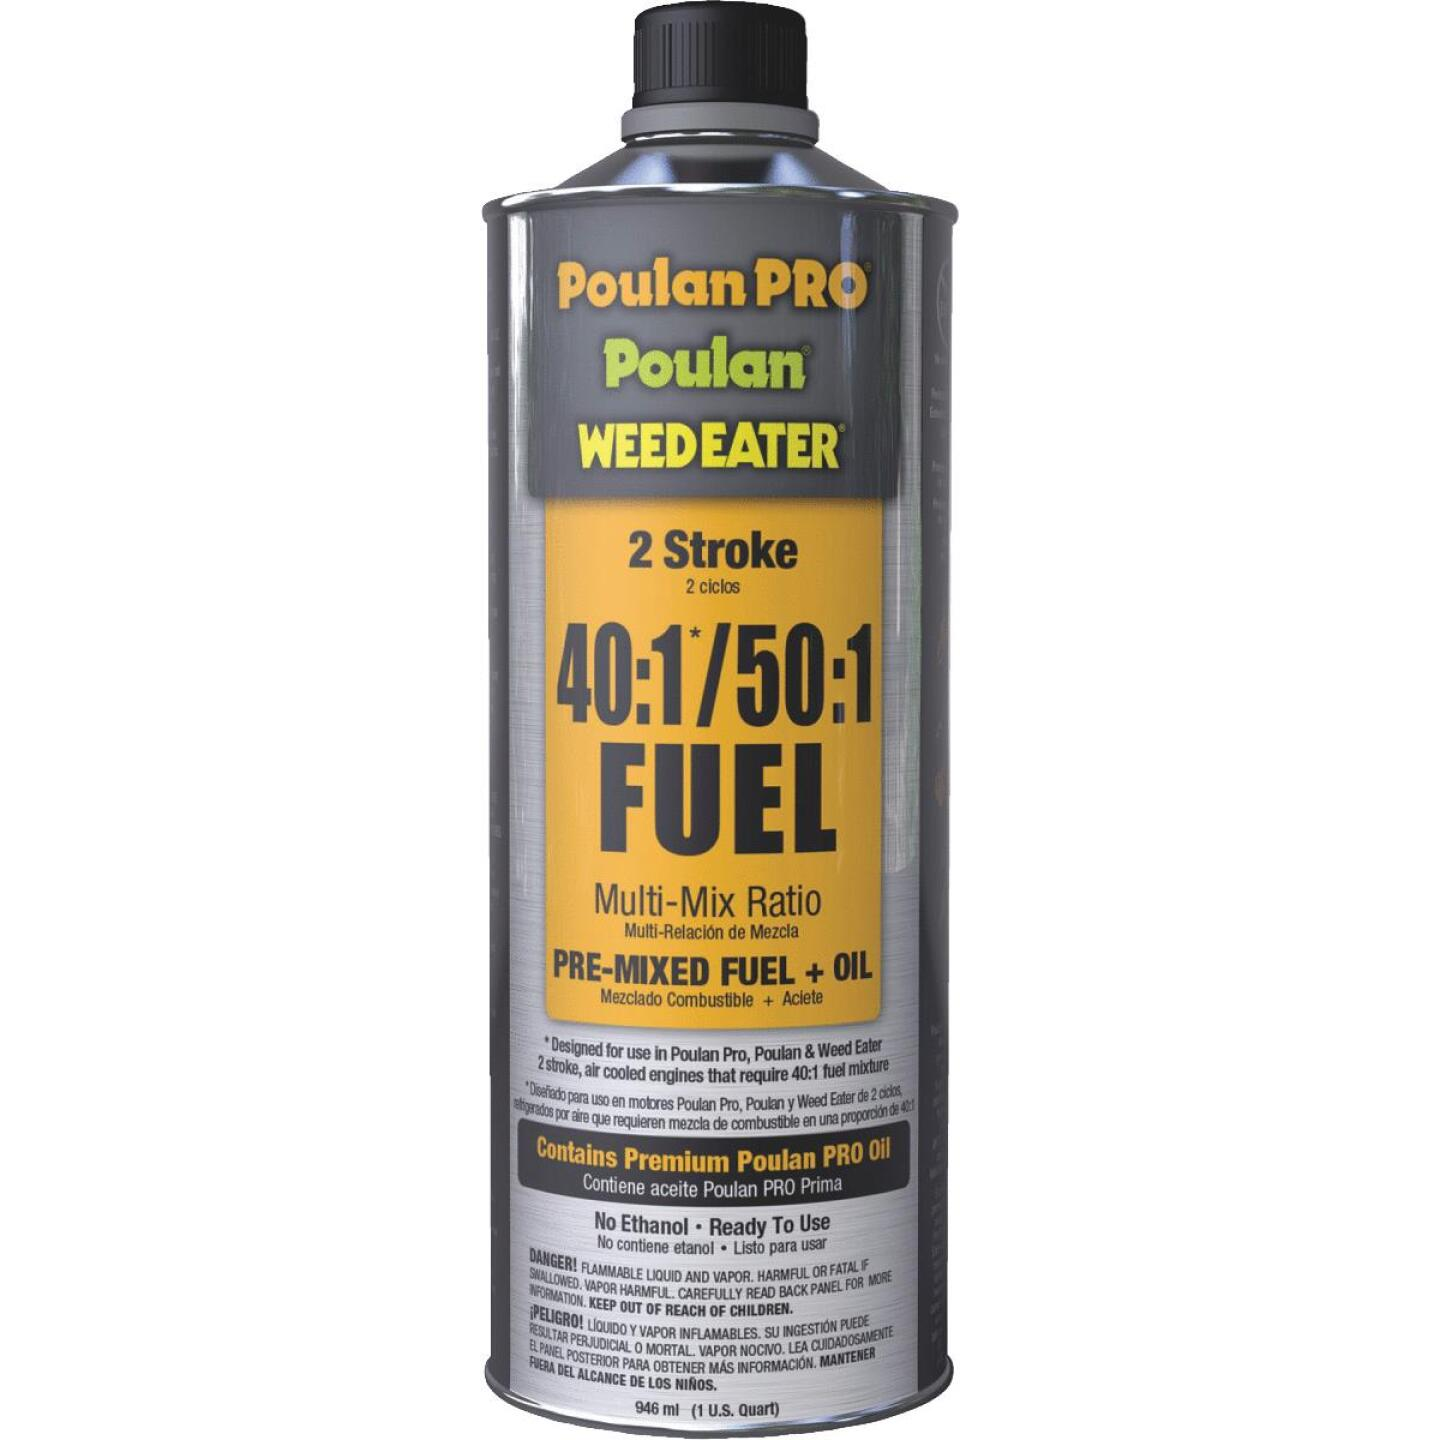 Poulan Pro Weedeater 1 Quart 40:1/50:1 Ethanol-Free Small Engine Multi-Mix Fuel & Oil Pre-Mix Image 1